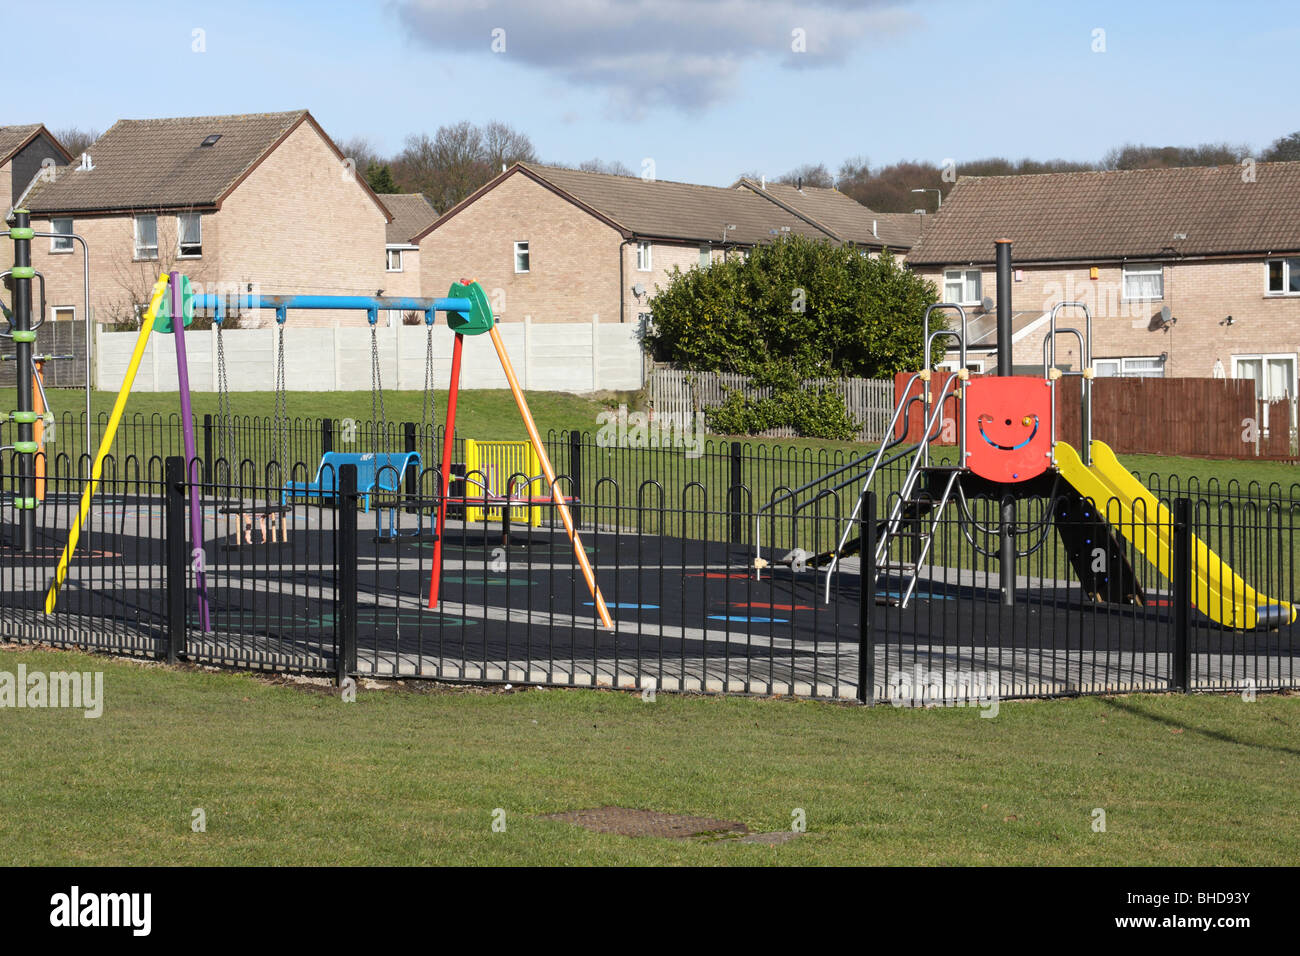 A children's play area on a U.K. housing estate. Stock Photo